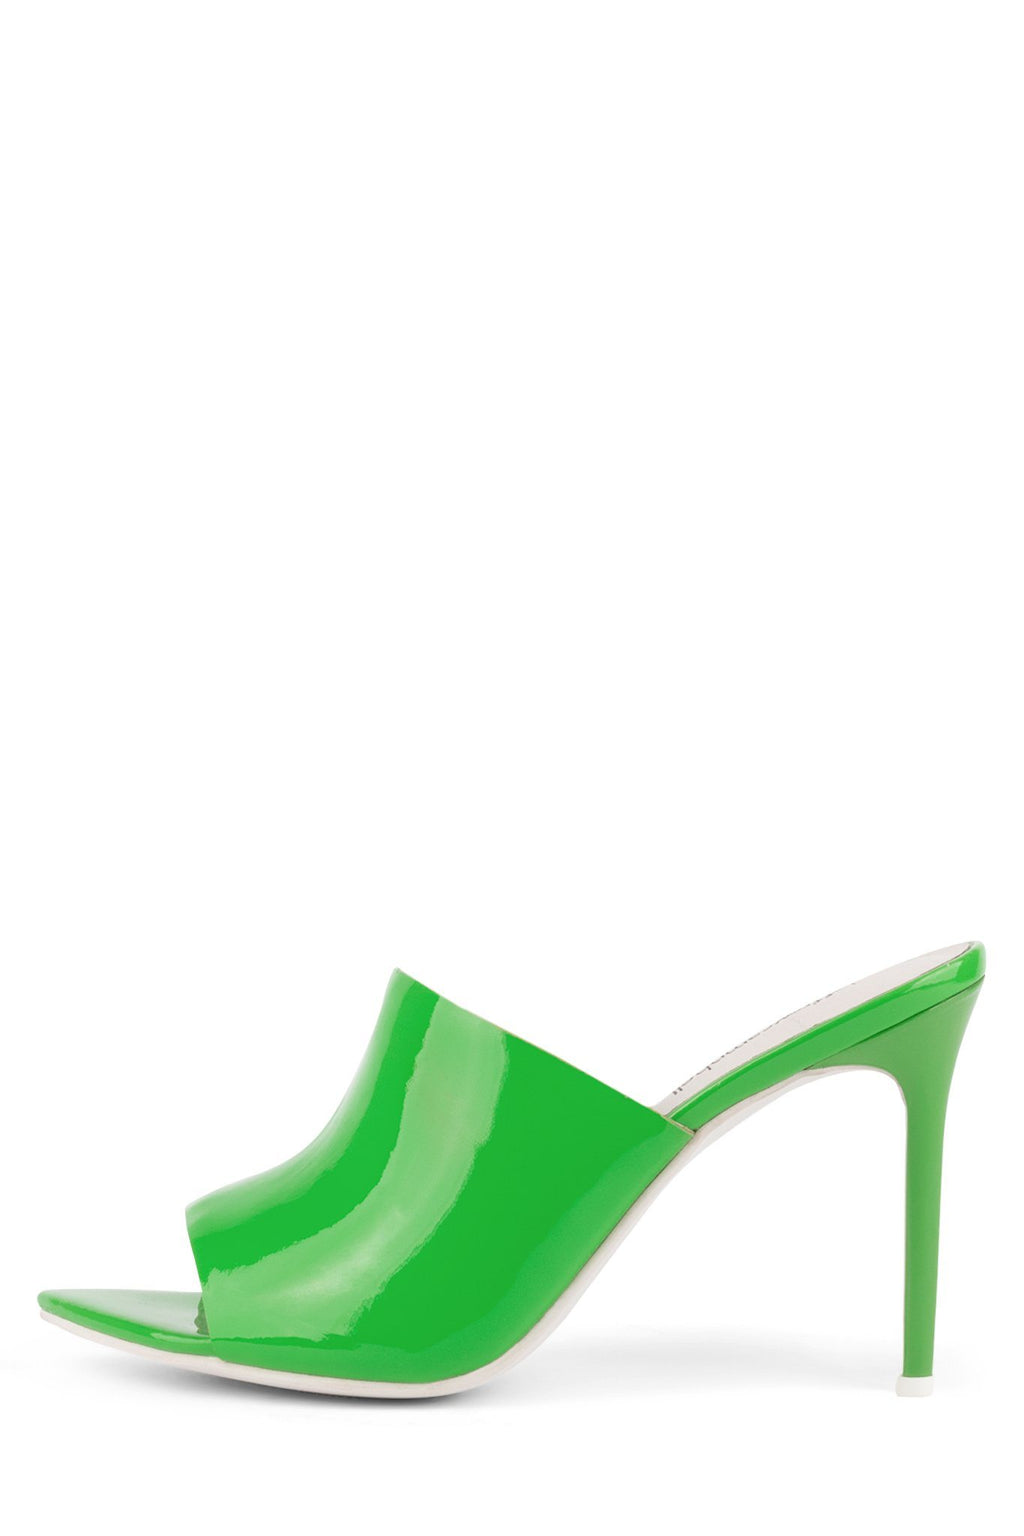 RATED-R Heeled Sandal RB Green Neon 6